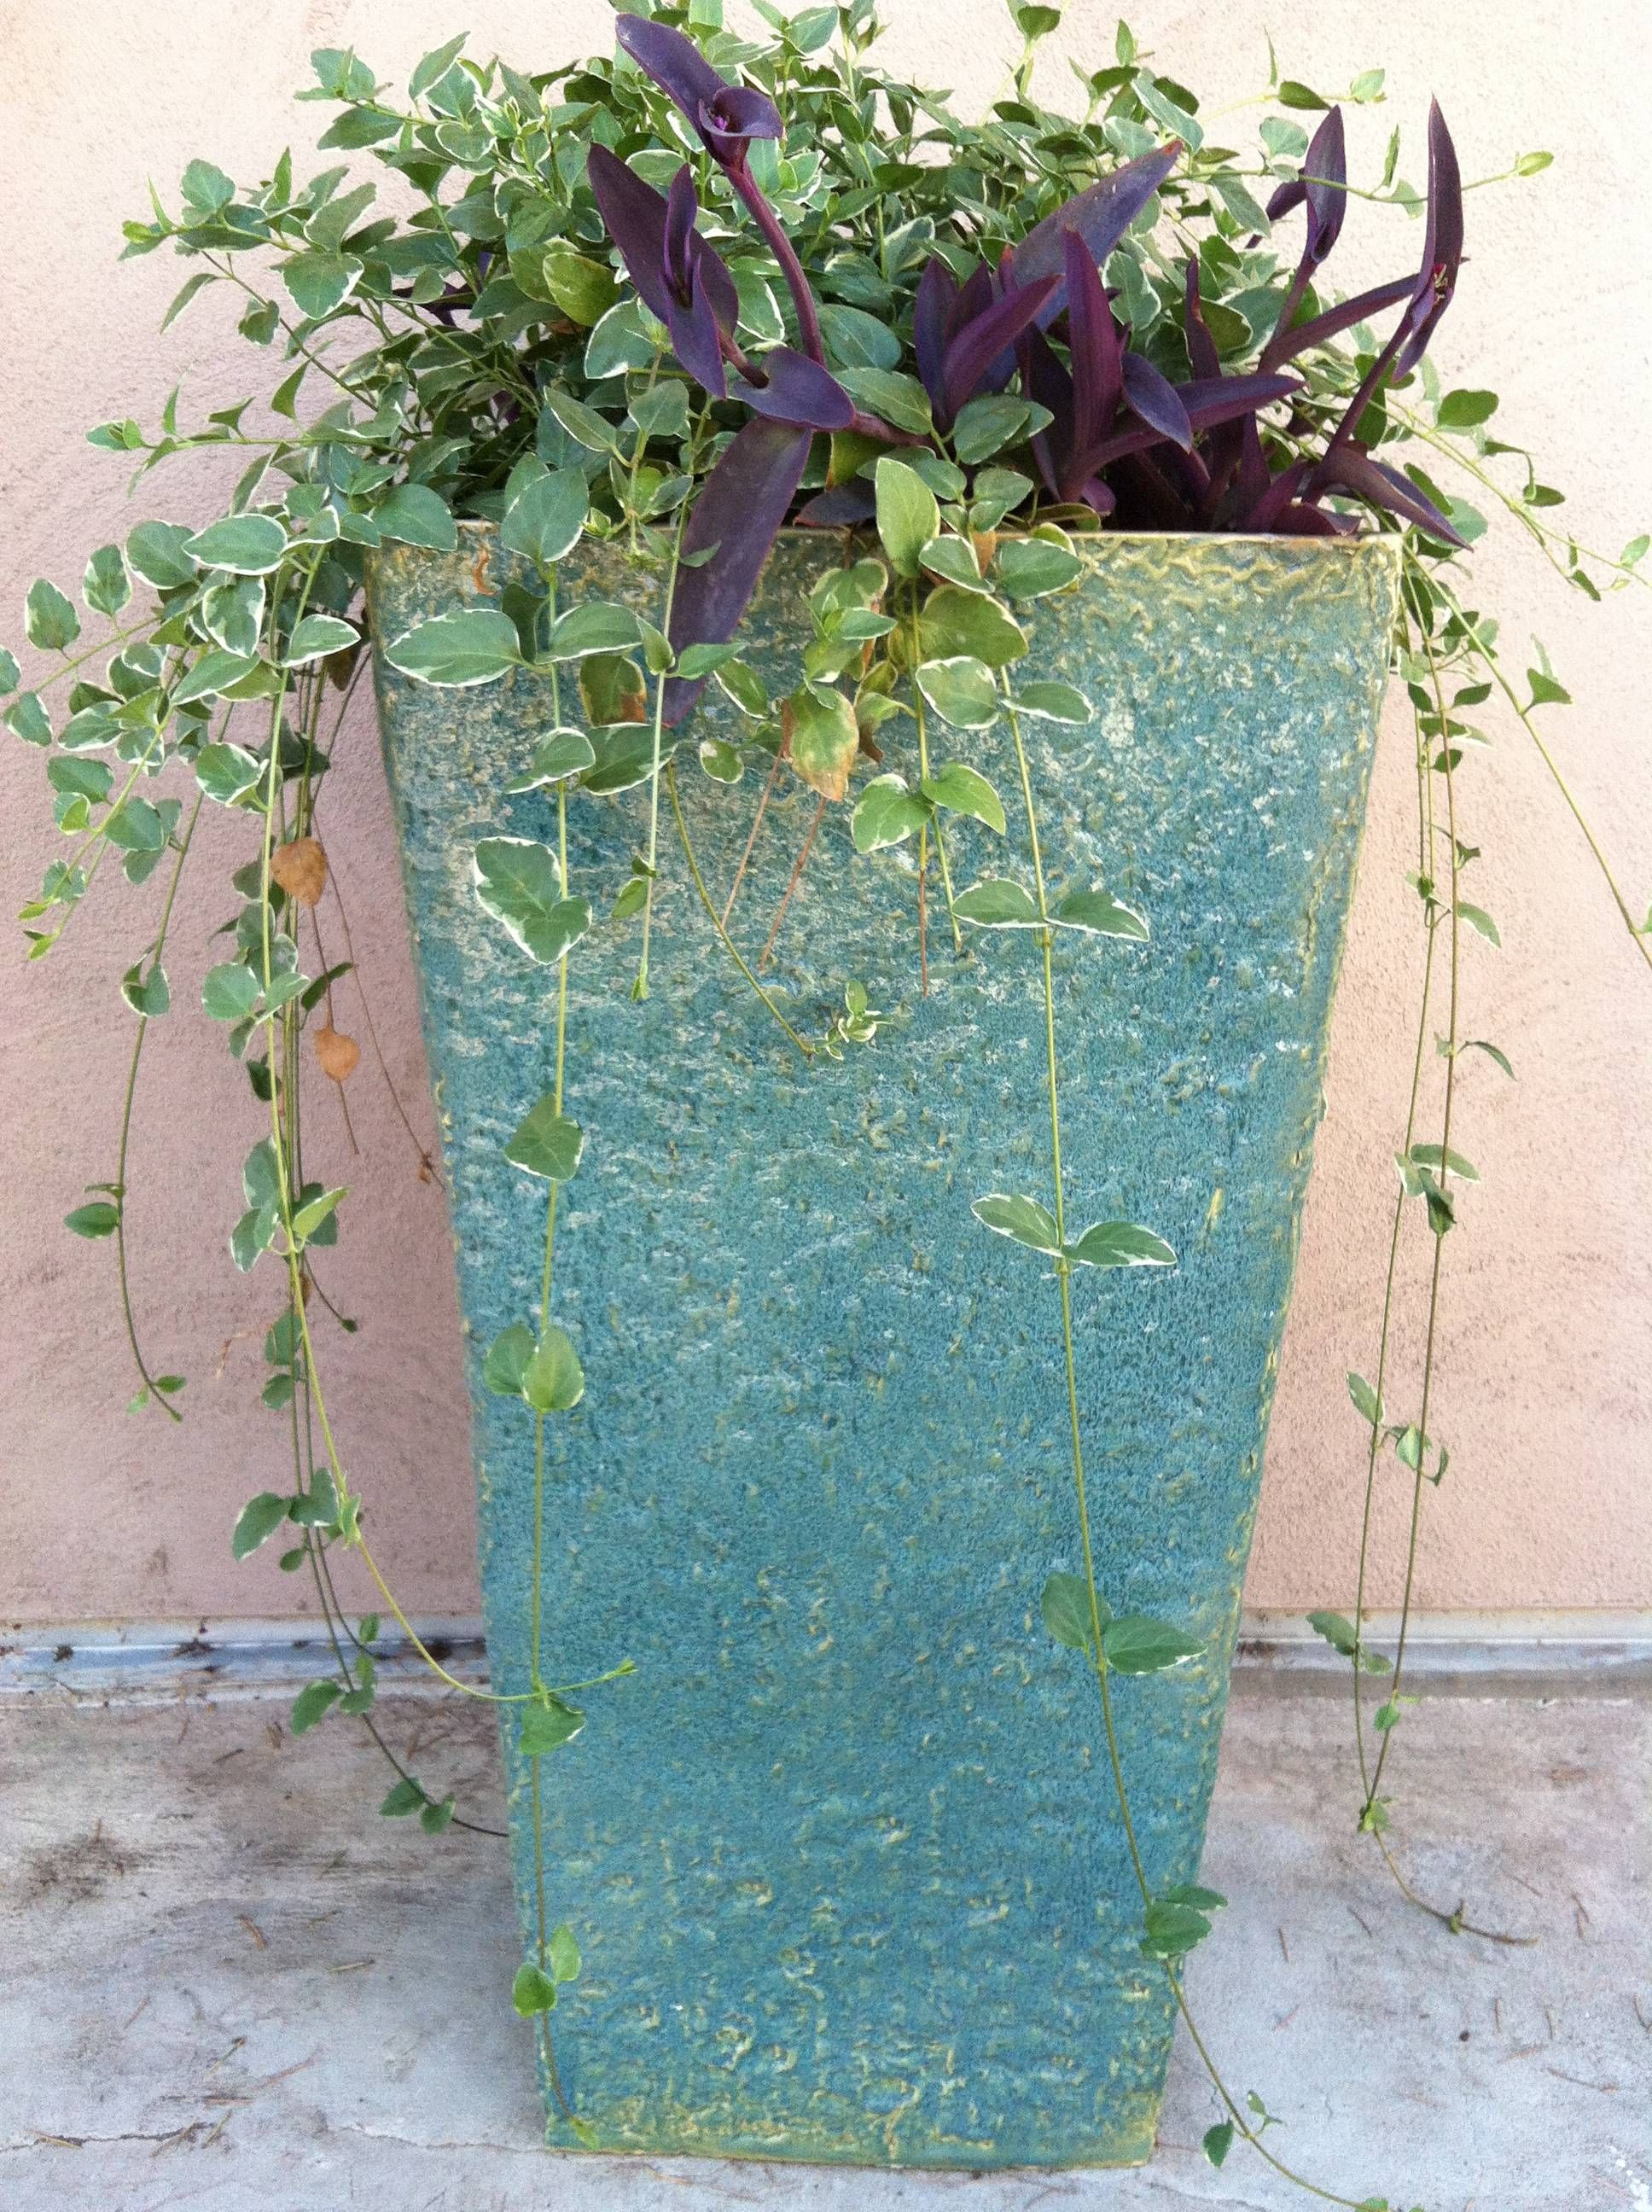 Landscaping With Large Planters : Large planters susan s ceramics texas landscaping